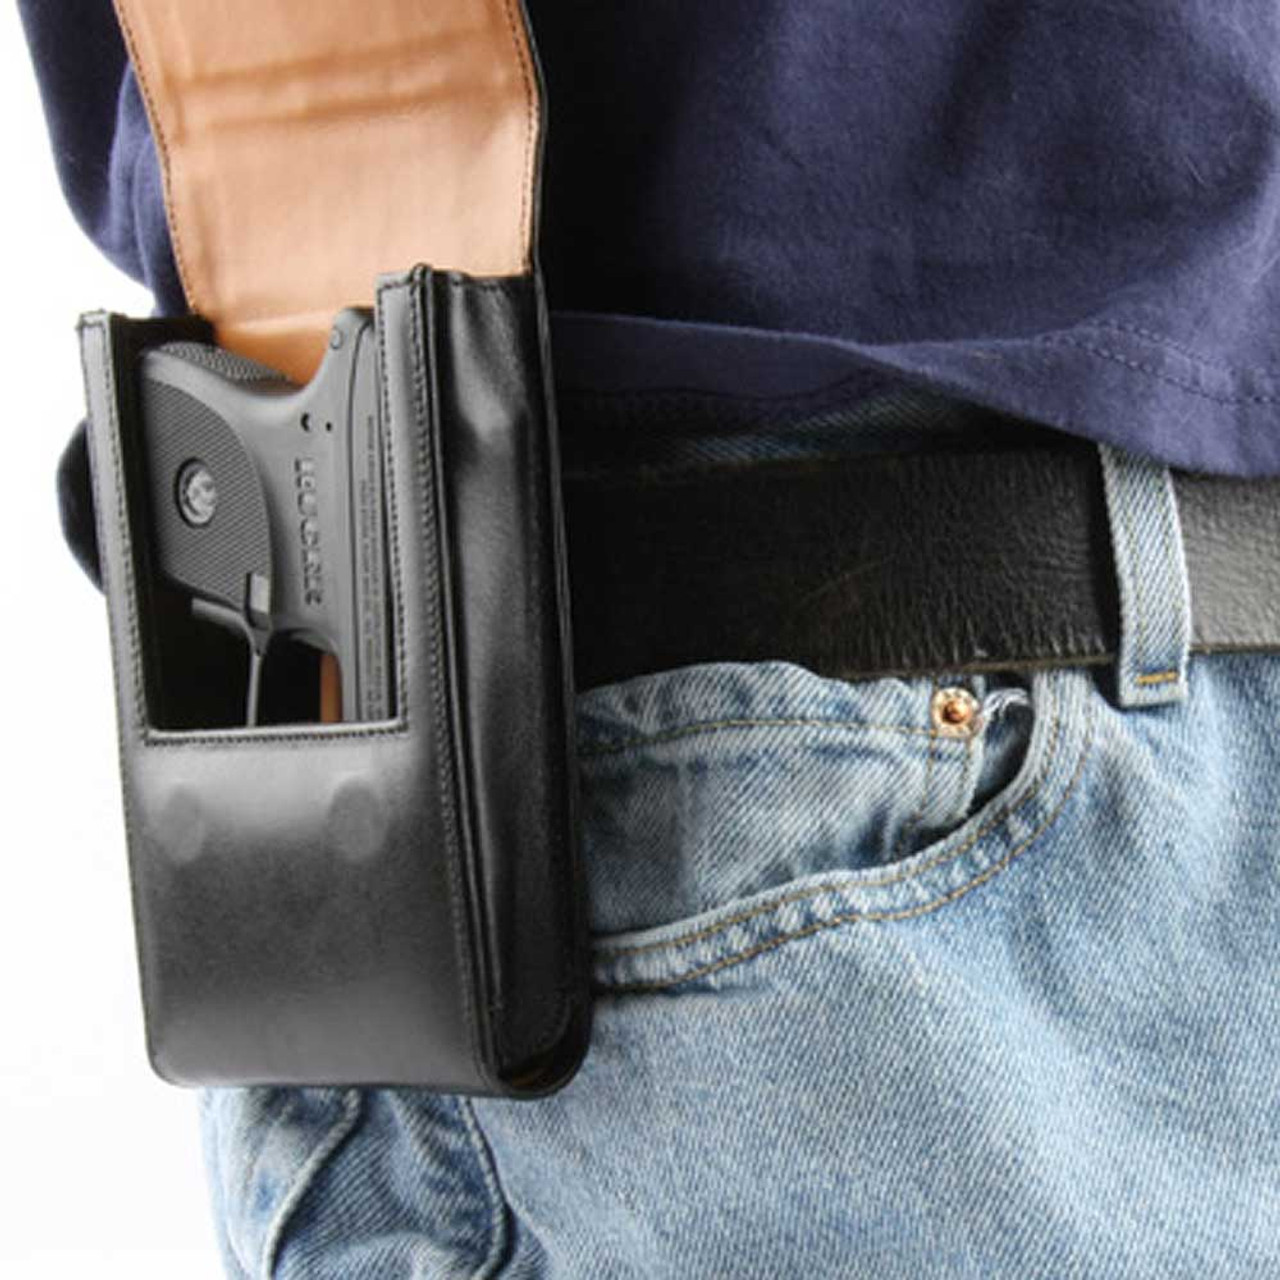 Walther PPK Concealed Carry Holster (Belt Loop)